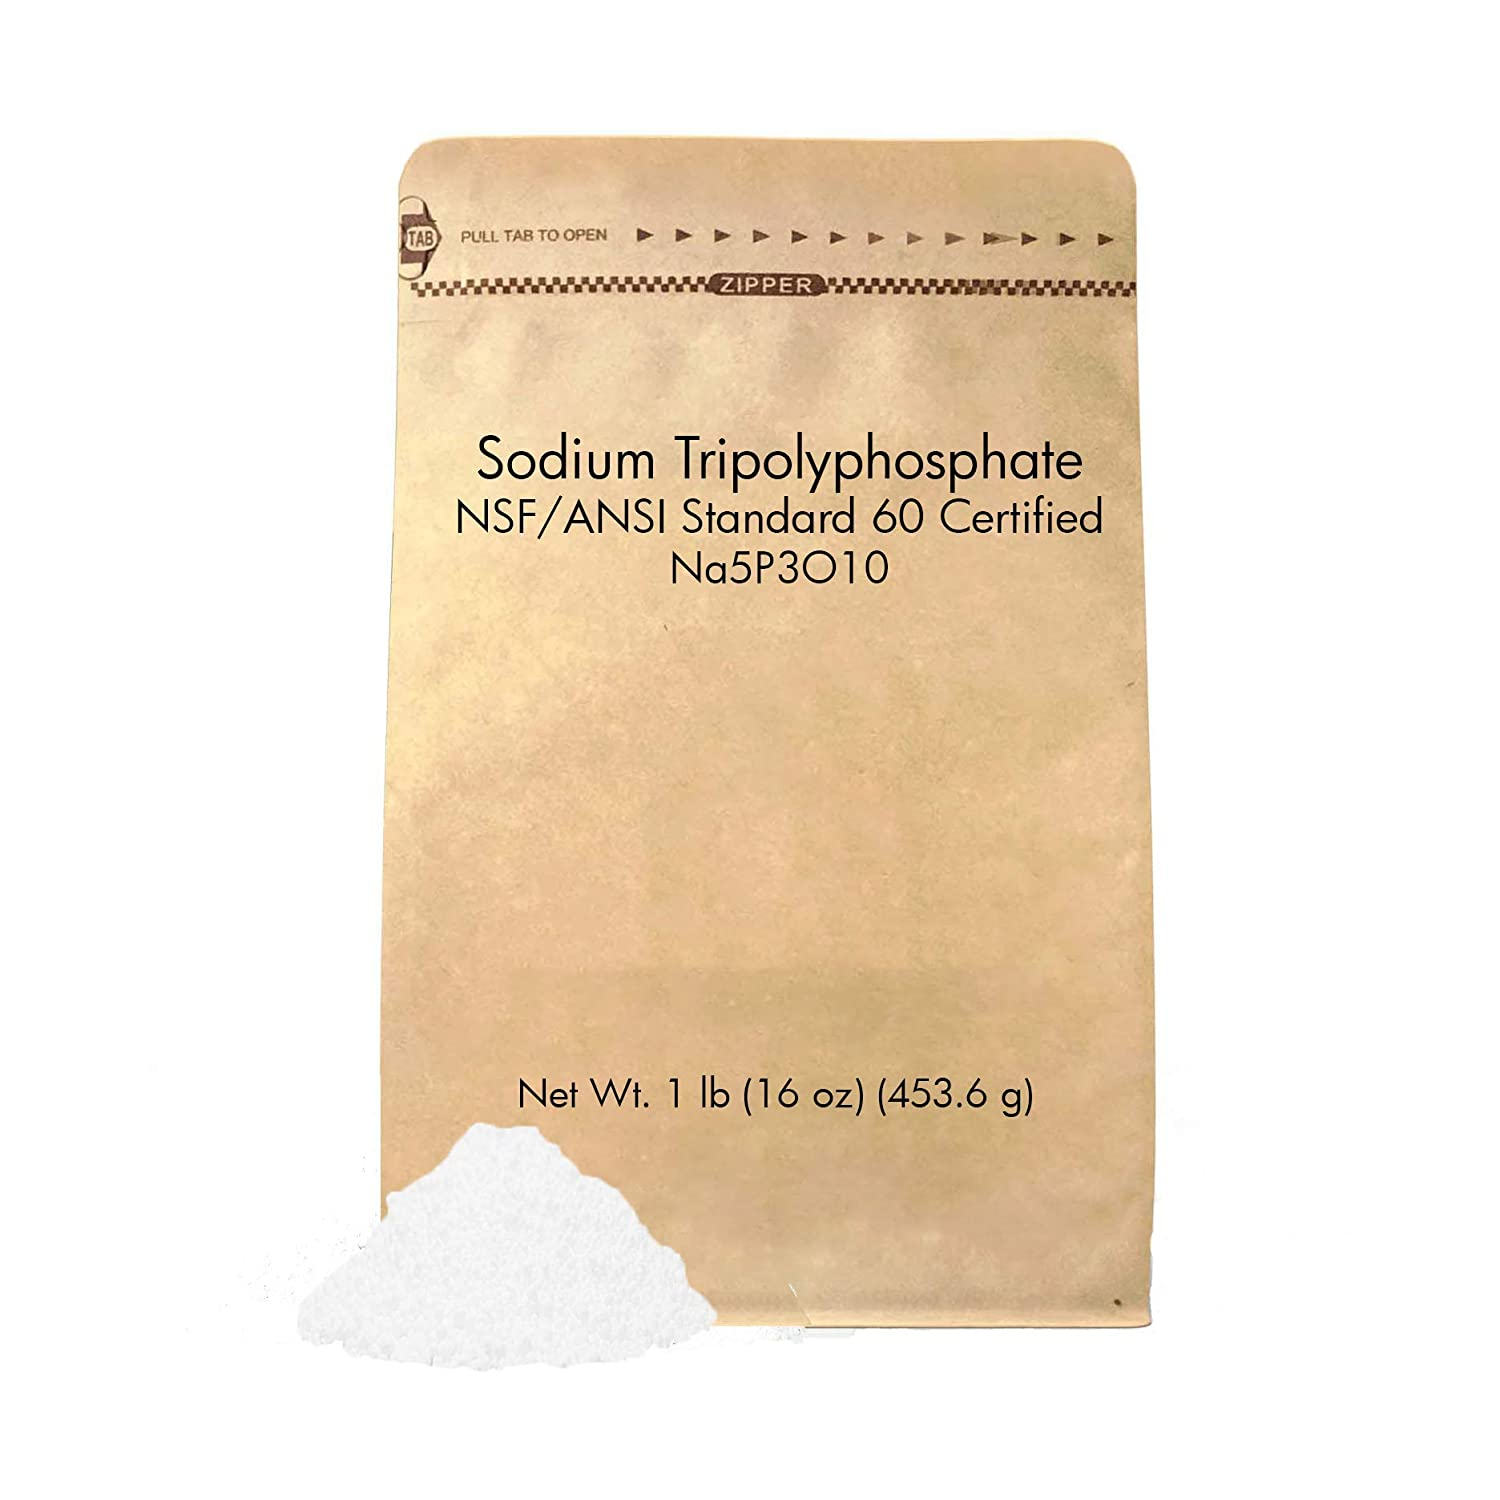 Sodium Tripolyphosphate (1 lb) by Pure Organic Ingredients, Eco-Friendly Packaging, Helps Soften Water (Also Available in 0.5 lb, 2.5 lb, 50 lb)